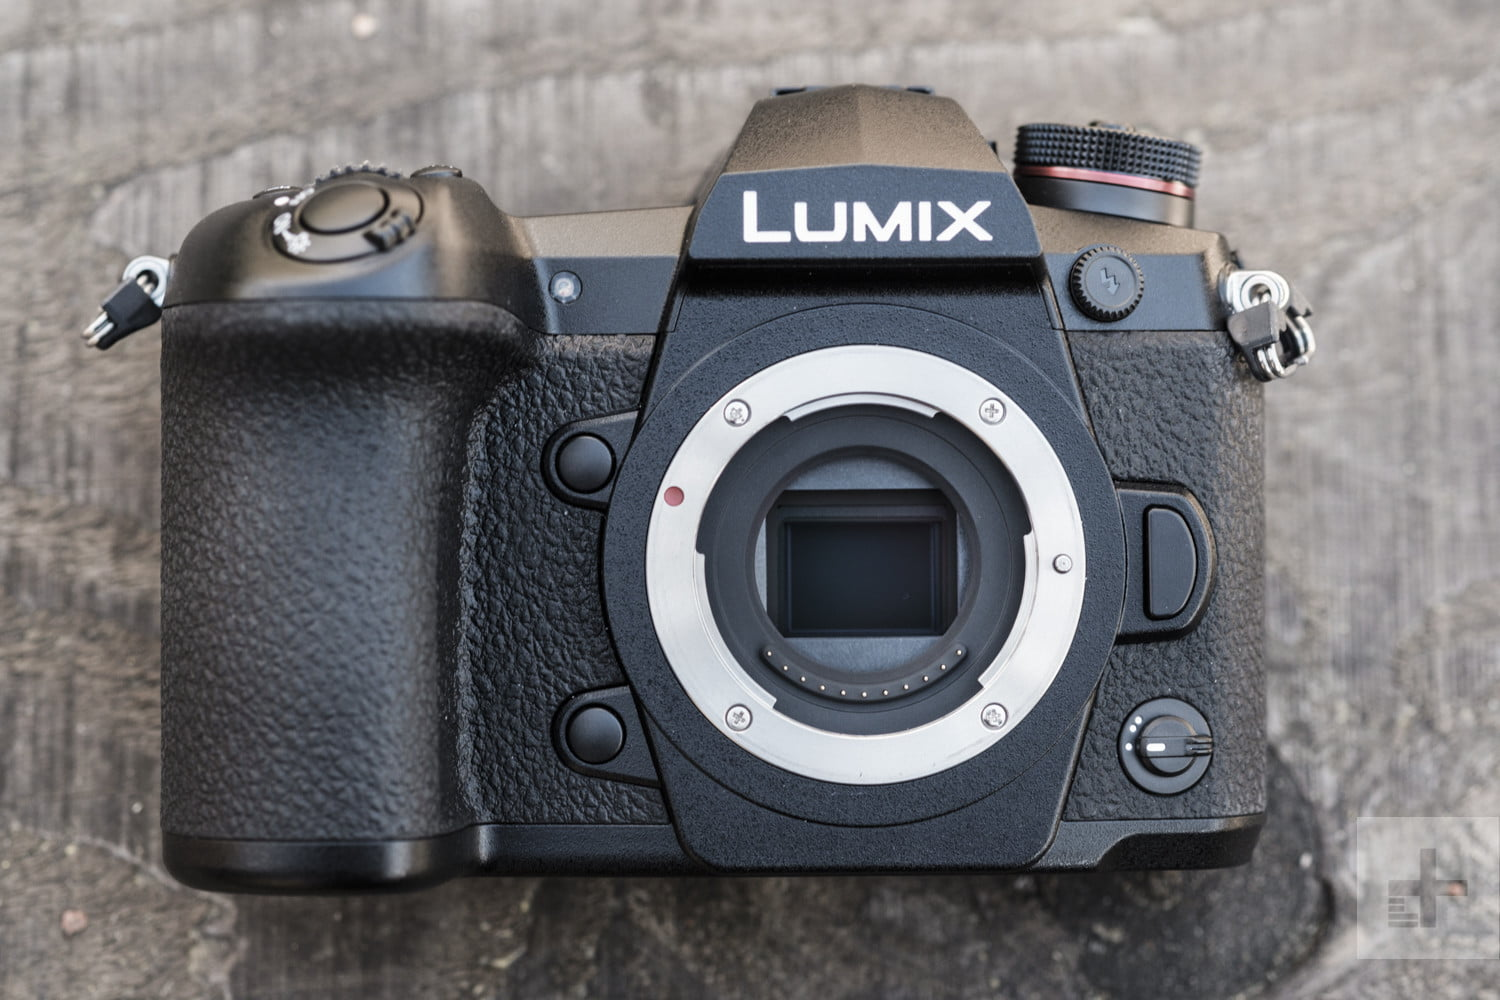 Guide] How to Transfer Photos from Lumix Camera to iPhone